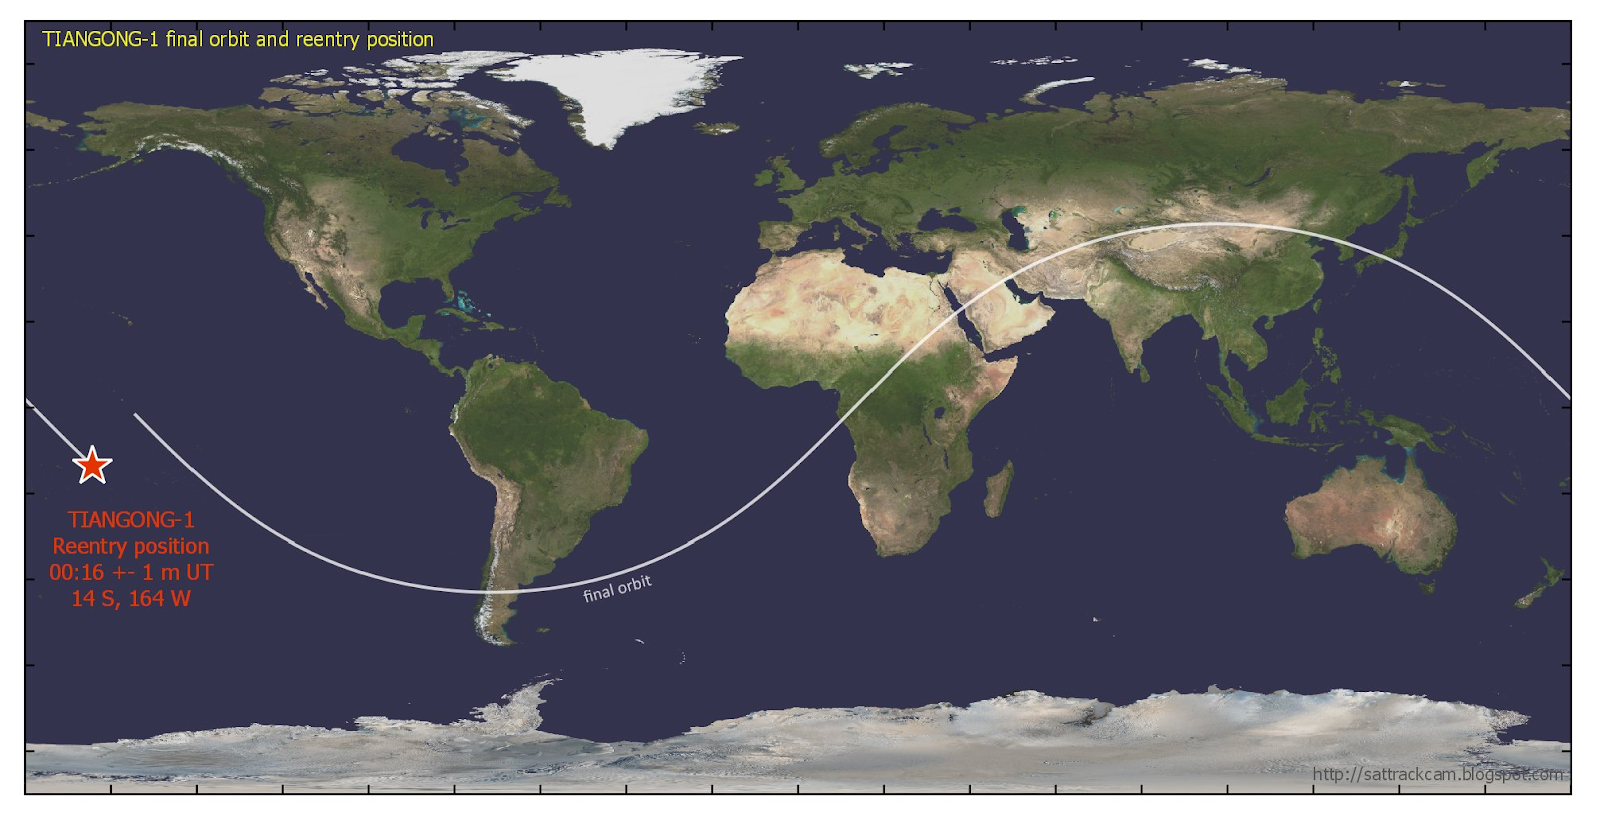 [The final orbit and re-entry position of Tiangong-1, according to the United States Joint Force Space Component Command. The waters near the re-entry position are claimed by American Samoa and Tahiti. Photo:  Dr. Marco Langbroek  / US Joint Force Space Component Command]